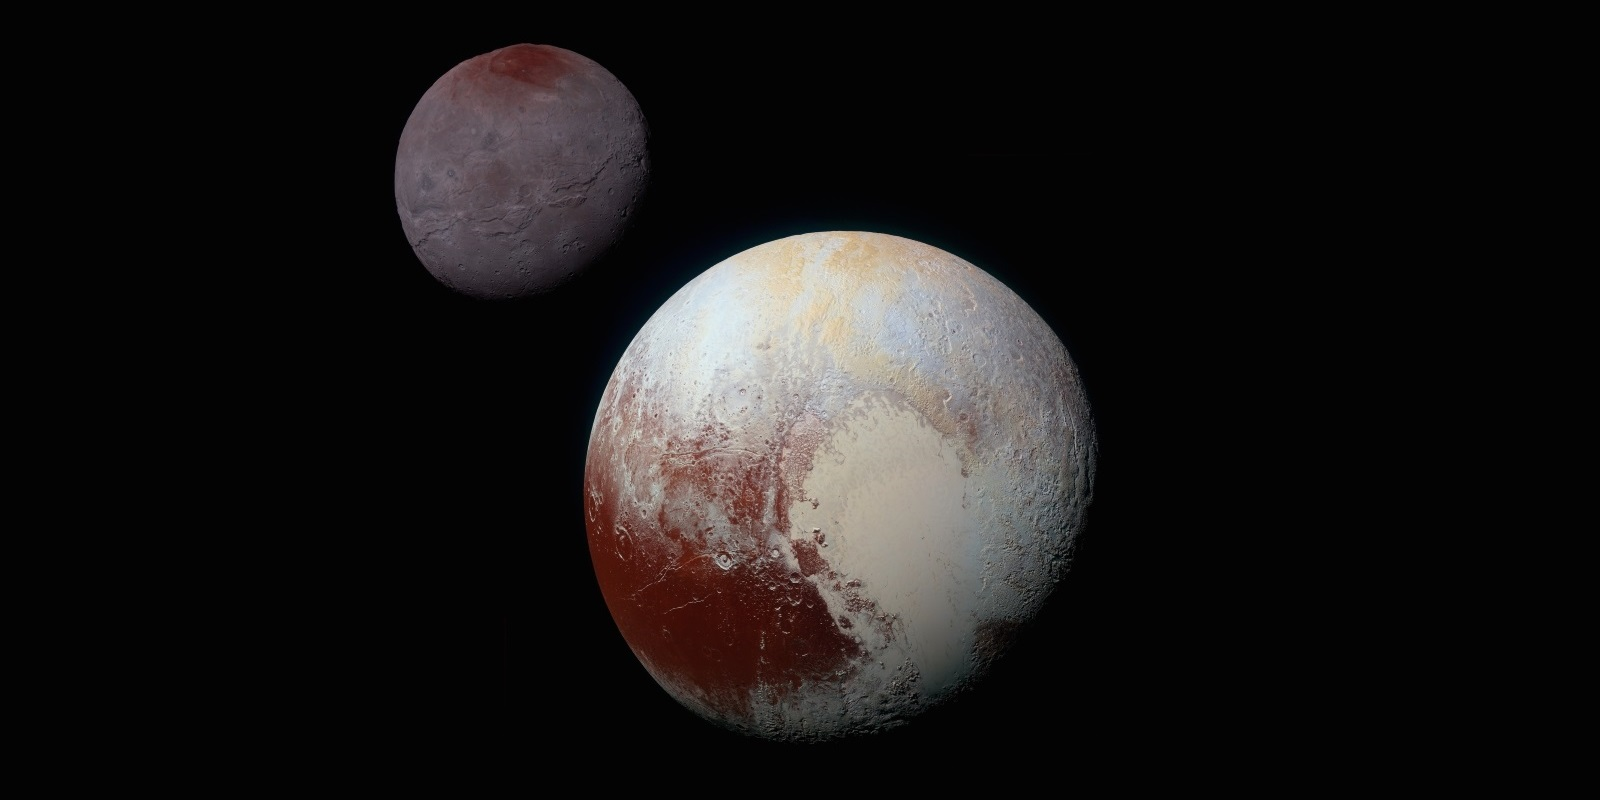 Tidal heating of Pluto by its moon Charon could maintain subsurface liquid oceans on the dwarf planet.